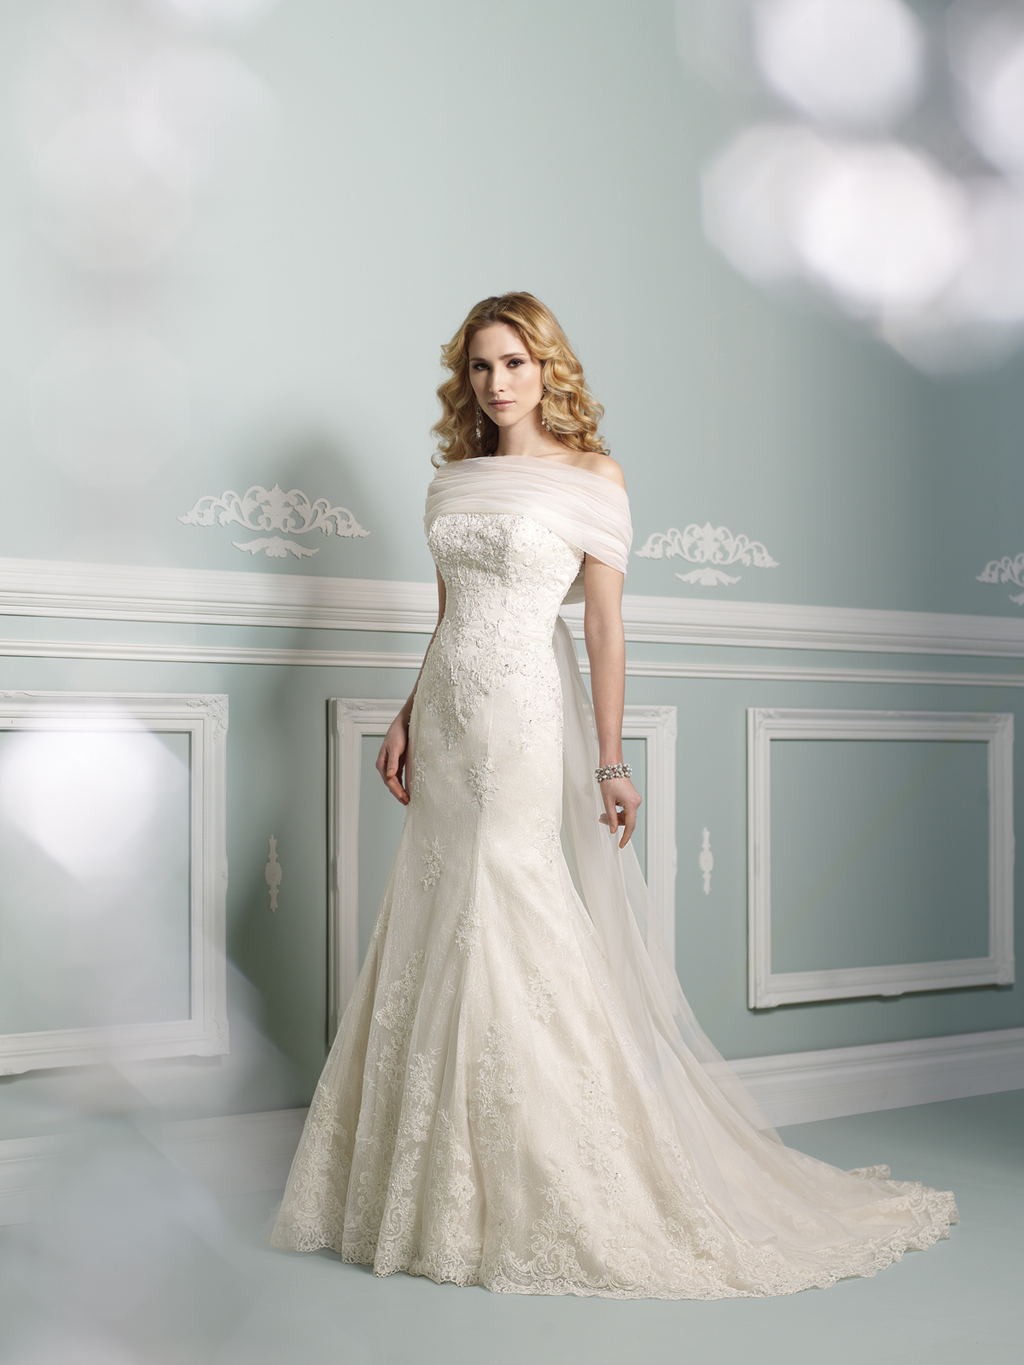 wedding dress james clifford collection mon cheri fall 2012 bridal gown 21265 WRAP